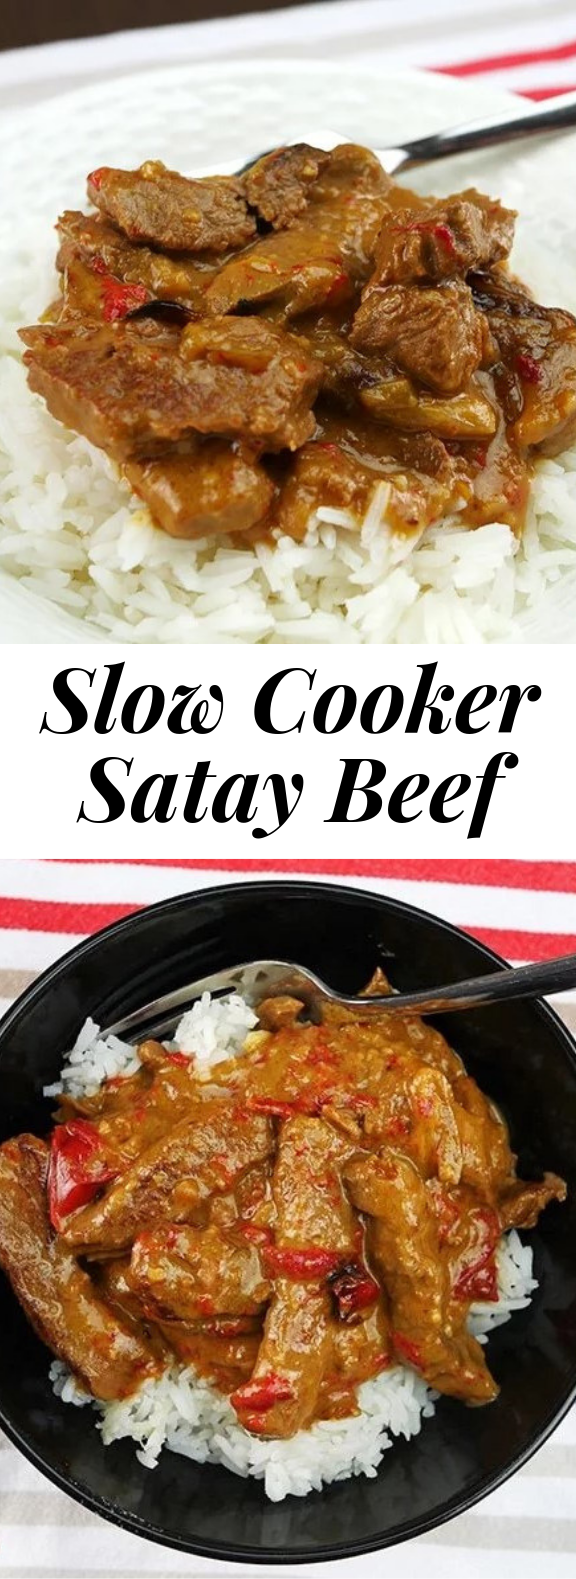 Mouthwatering Good Slow Cooker Satay Beef #healthy #crockpot